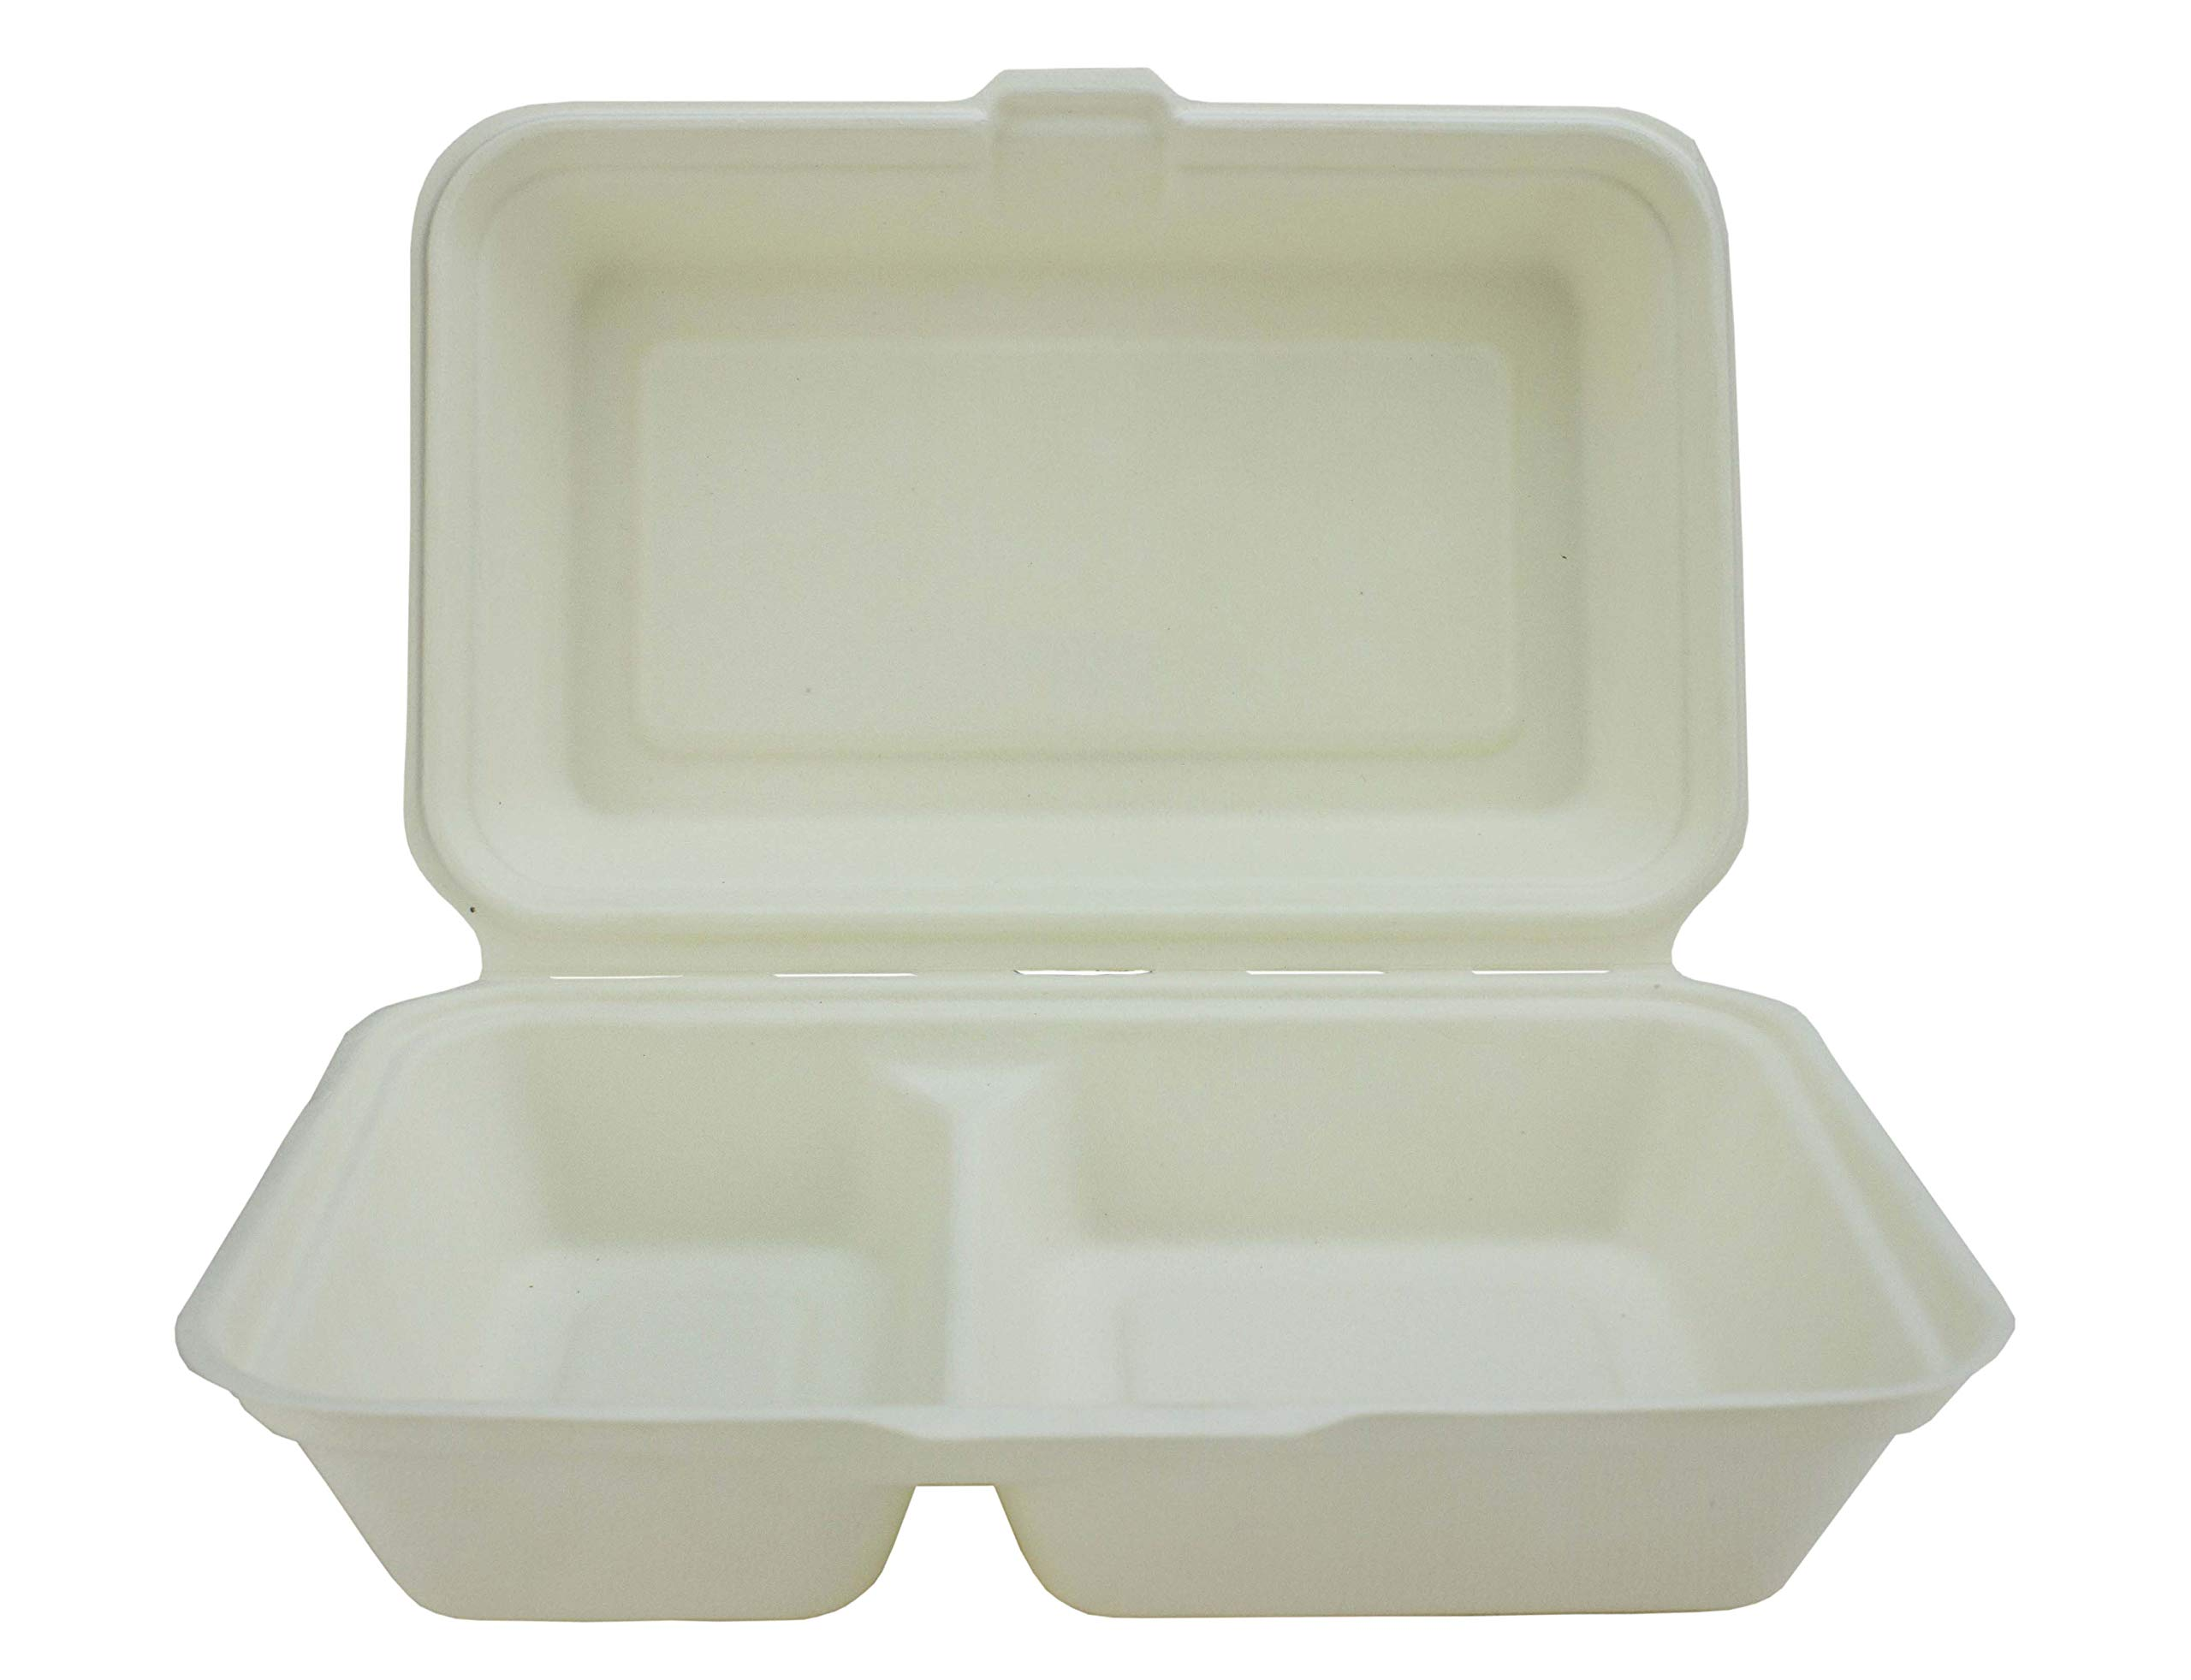 Bagasse 2 Compartment Burger Box - 240 x 155 x 75mm - Set of 50 - Super Rigid Biodegradable, Compostable, and Recyclable Disposable Food Boxes - Made from Natural Sugar Cane Pulp